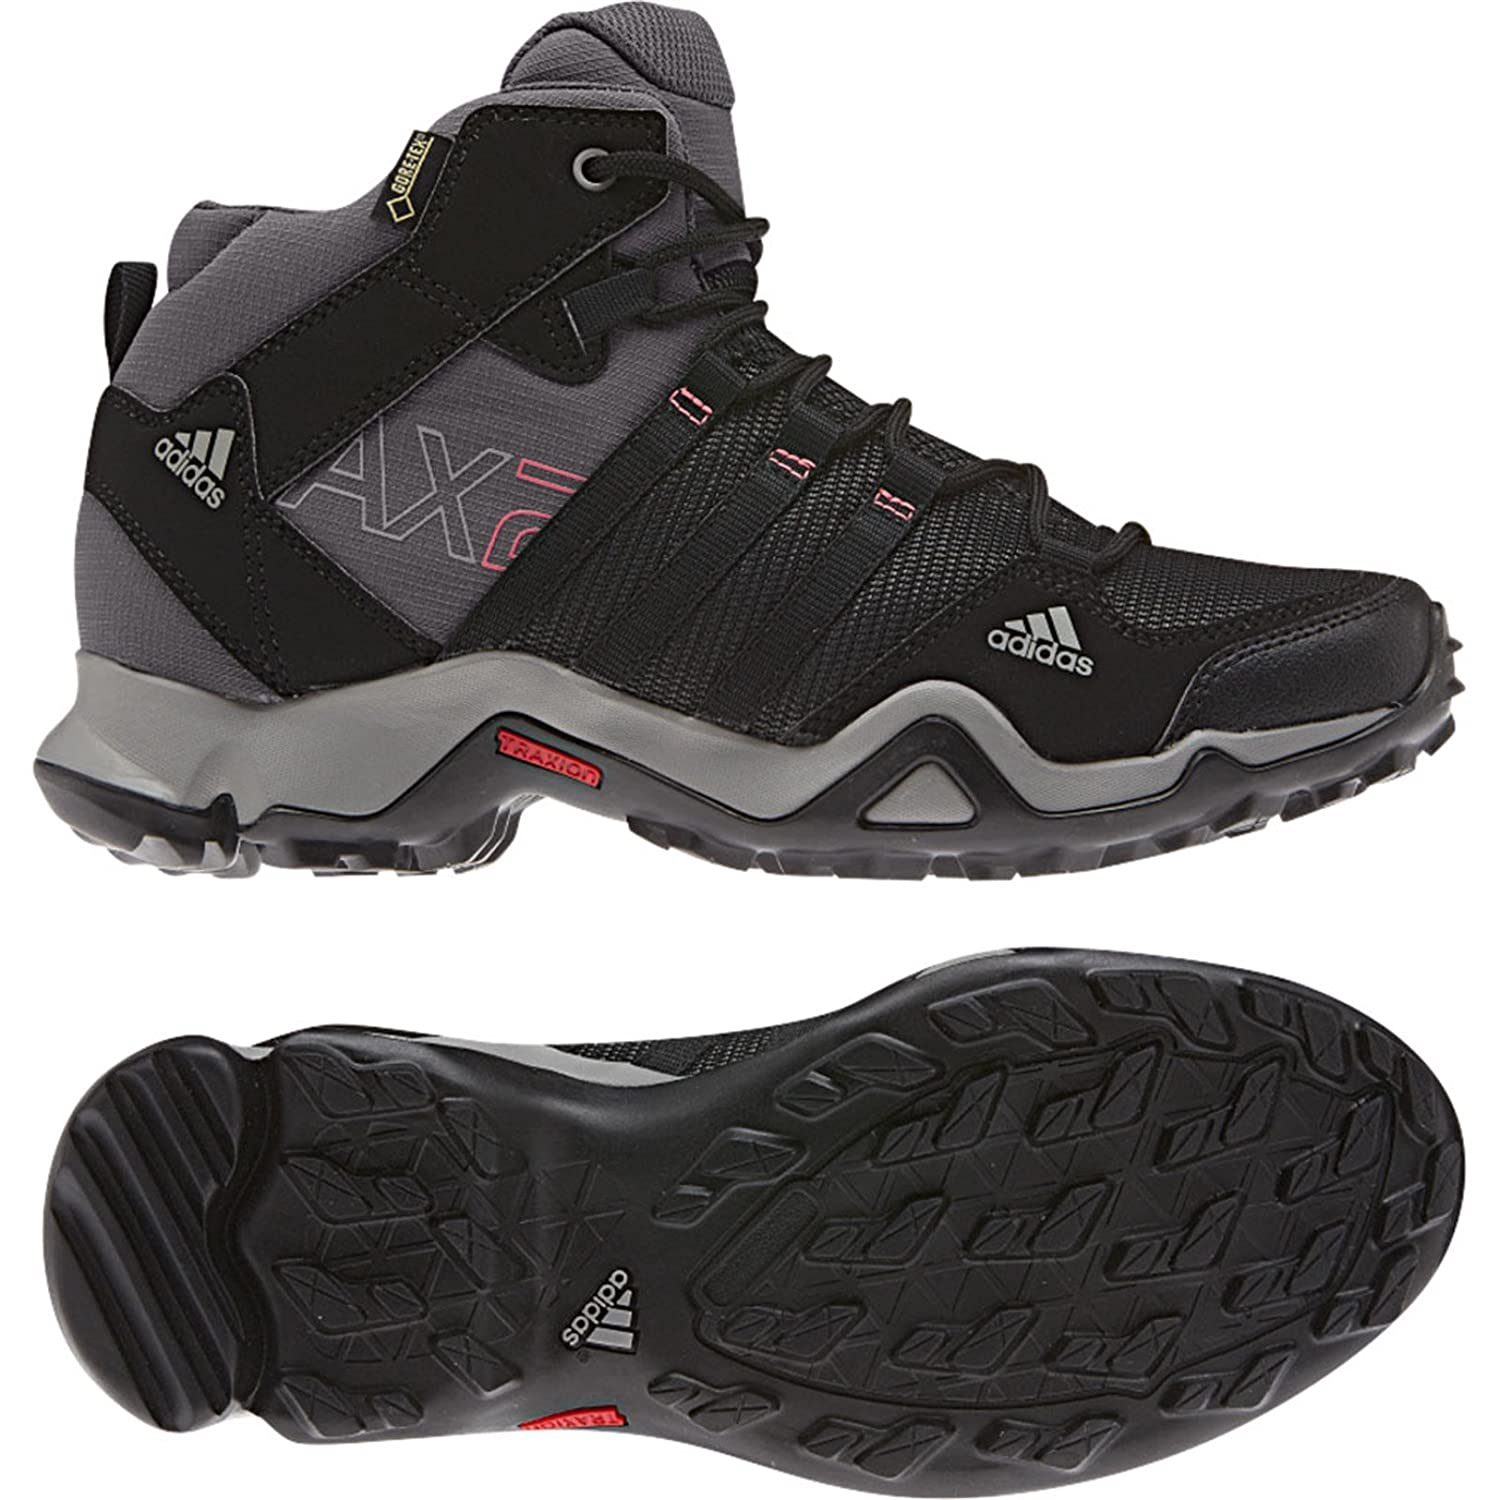 buy online ae0a5 ae790 Amazon.com  adidas Outdoor AX 2 Mid GTX Hiking Boot - Women s  Carbon Black Bahia Pink 11  Sports   Outdoors